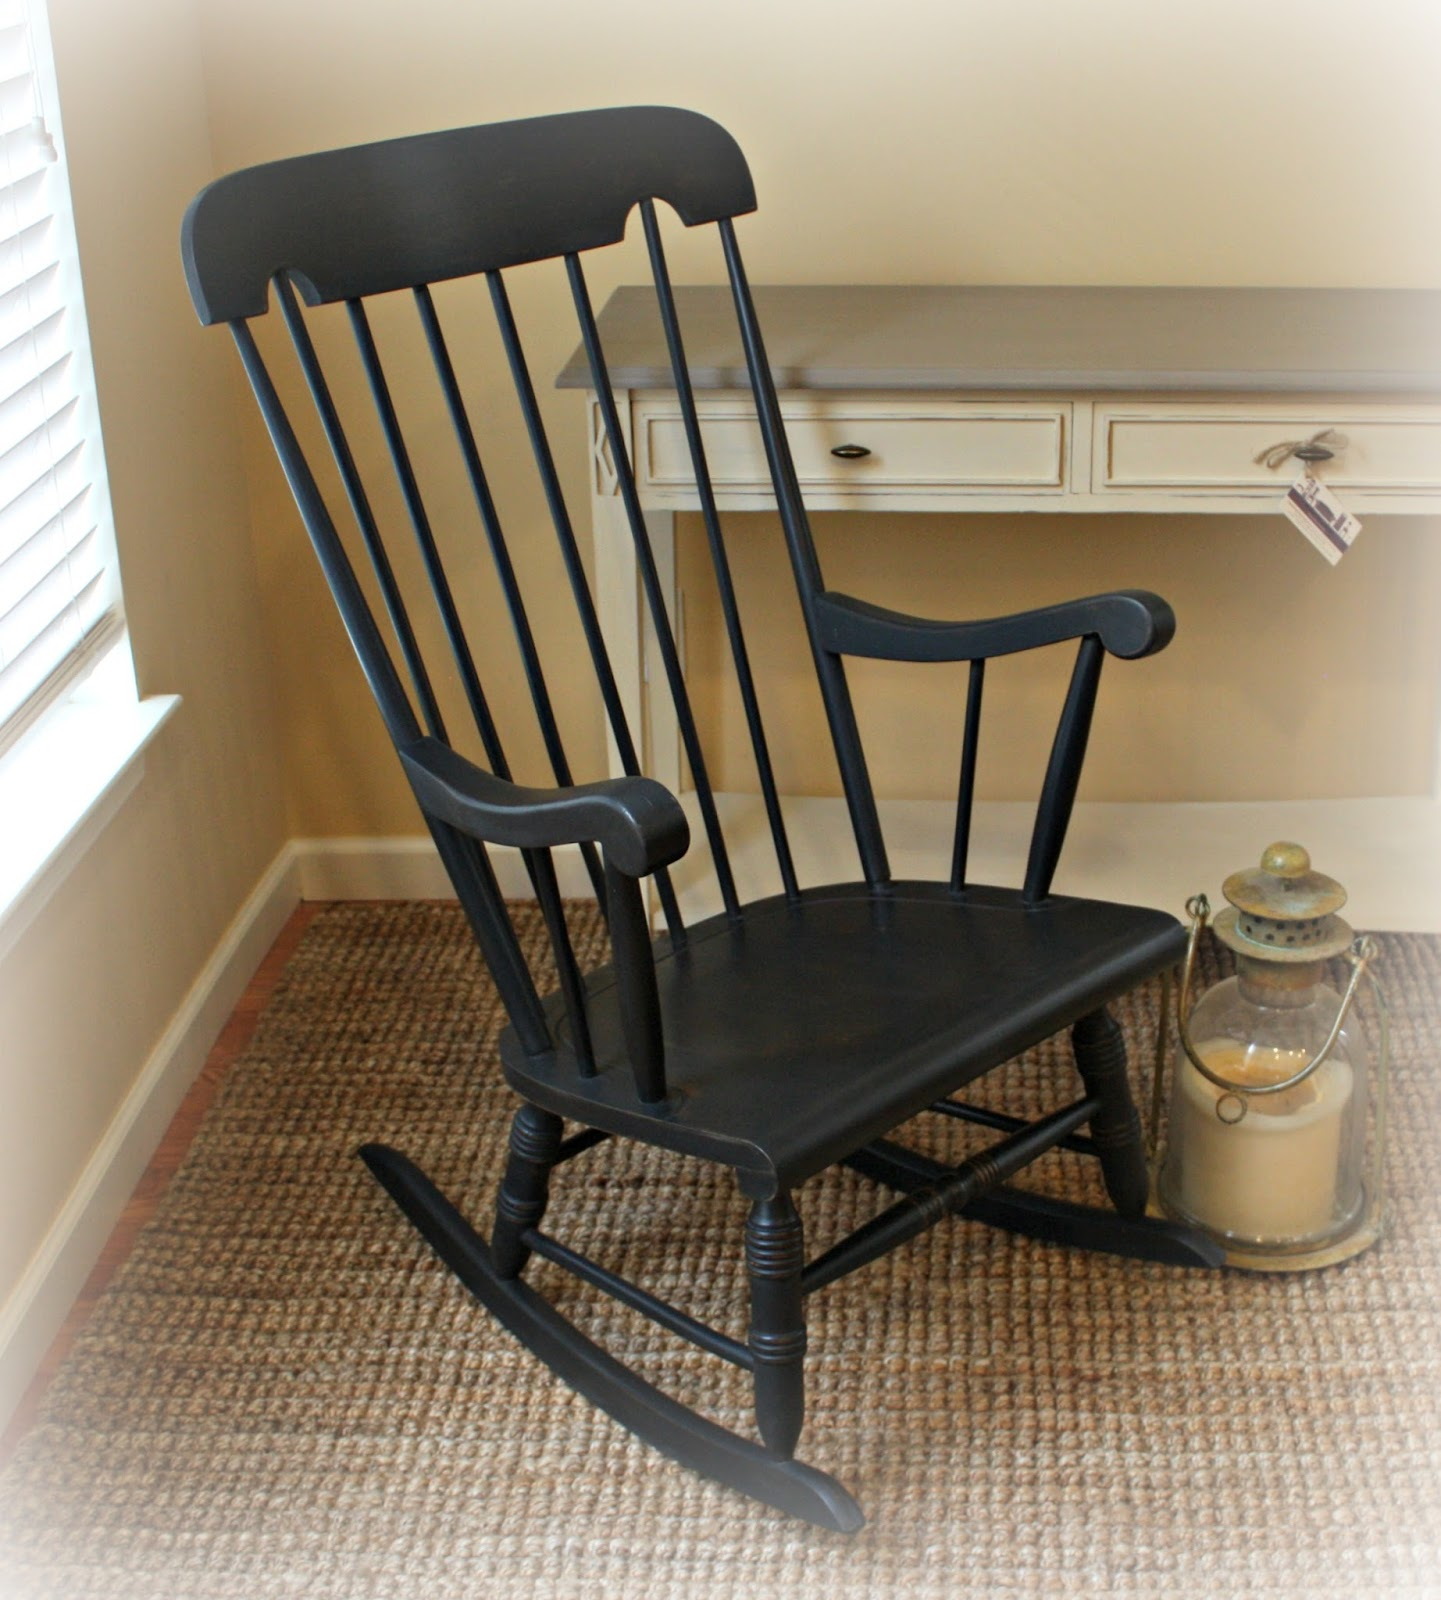 vintage rocking chair with damaged finish gets a new look. Black Bedroom Furniture Sets. Home Design Ideas